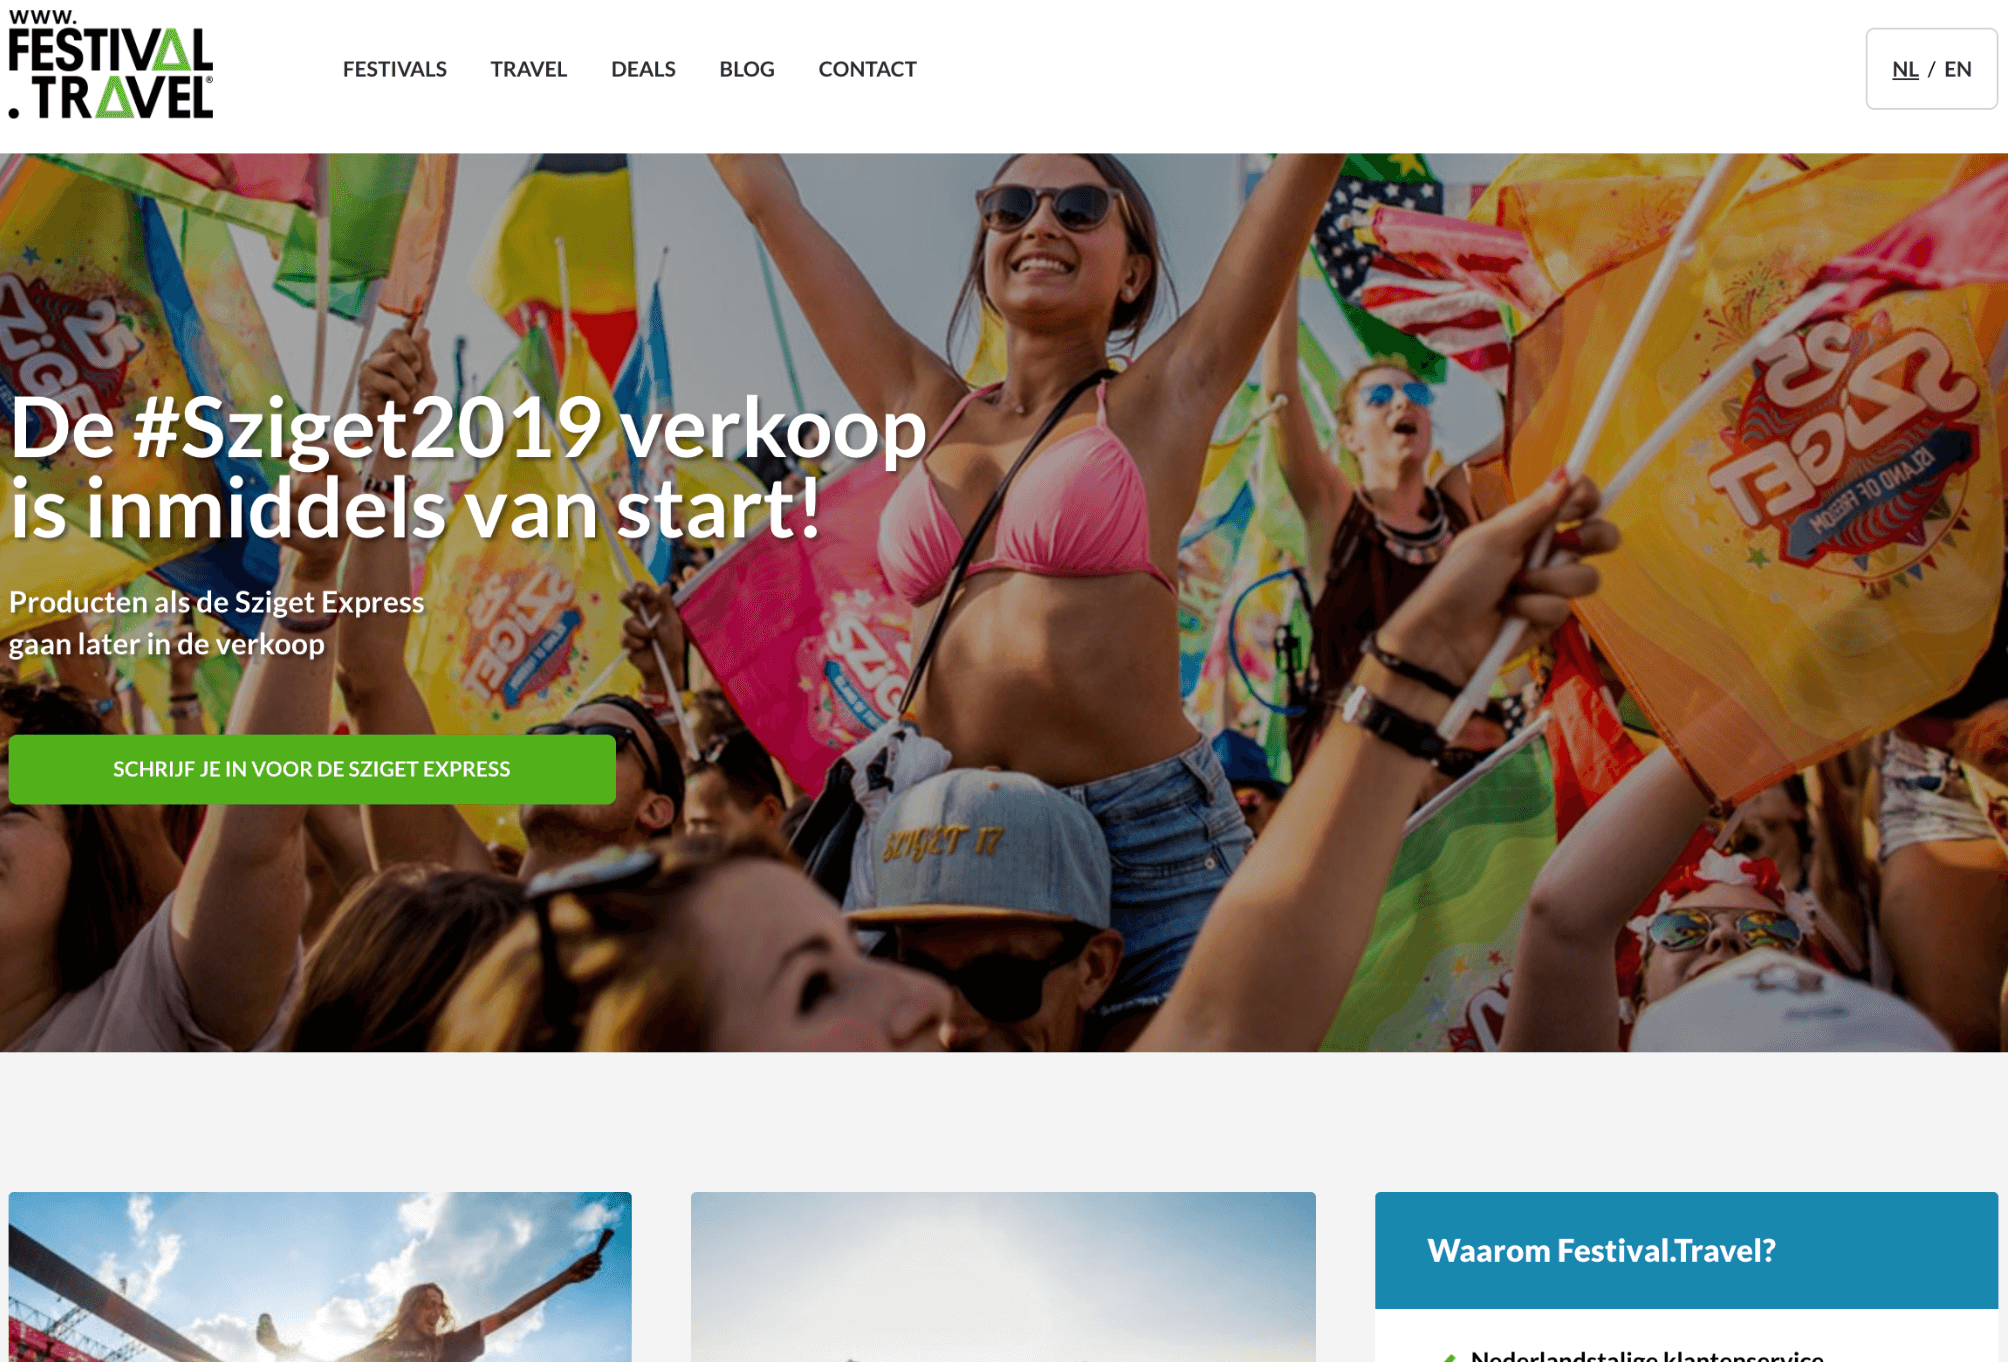 Festival Travel website